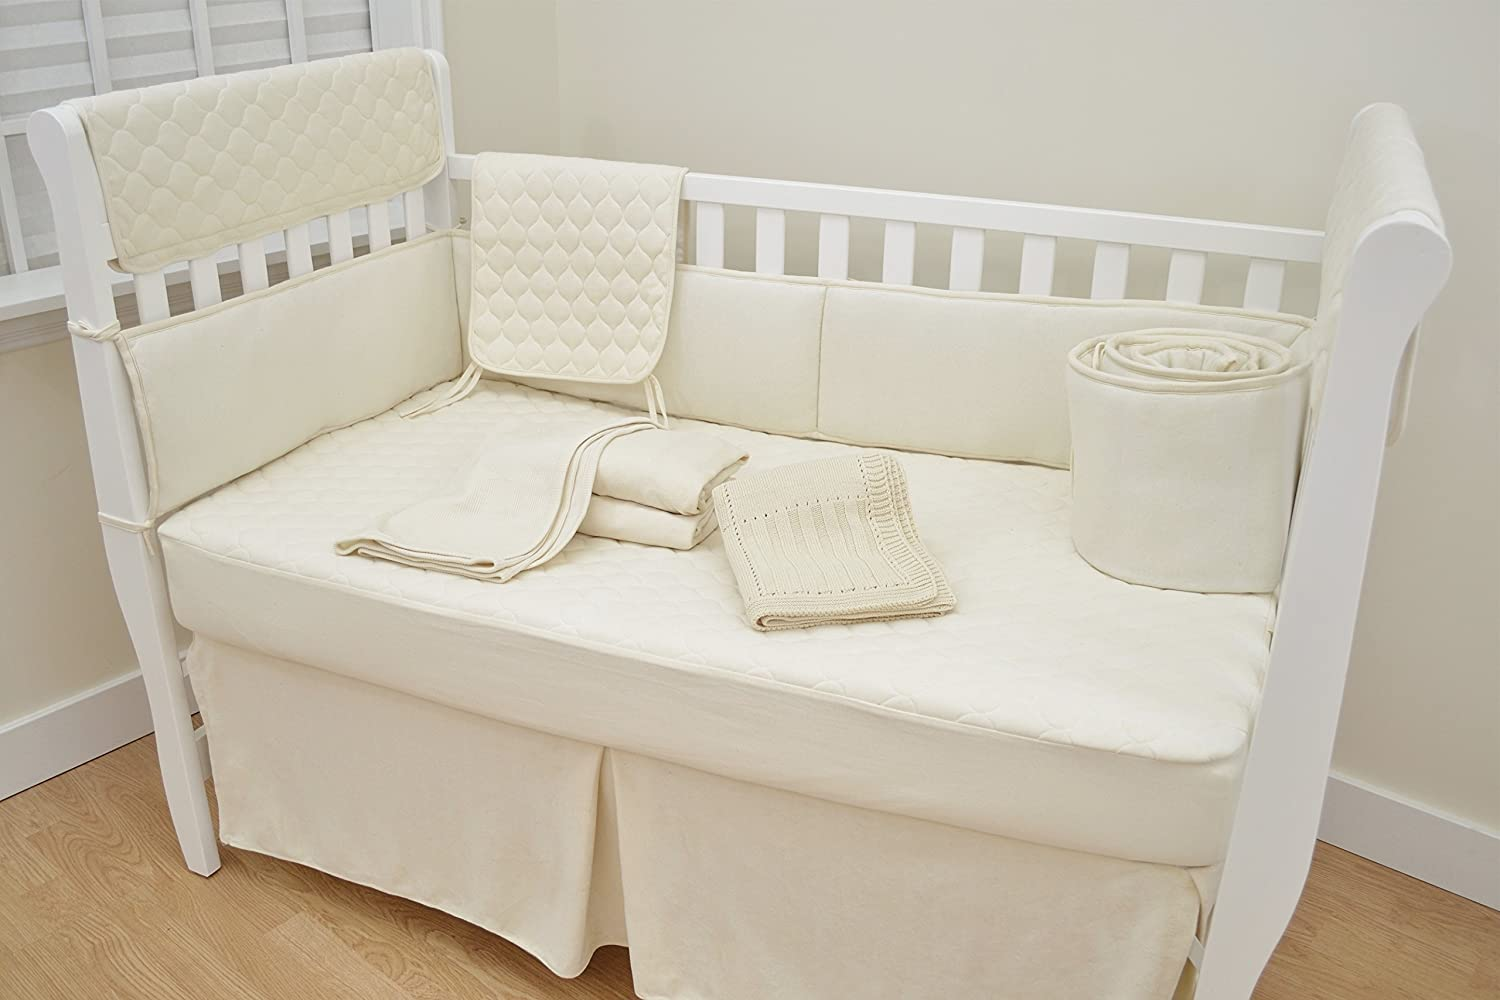 puff winks organic pebble pad today bath mattress cotton shipping bedding product free crib